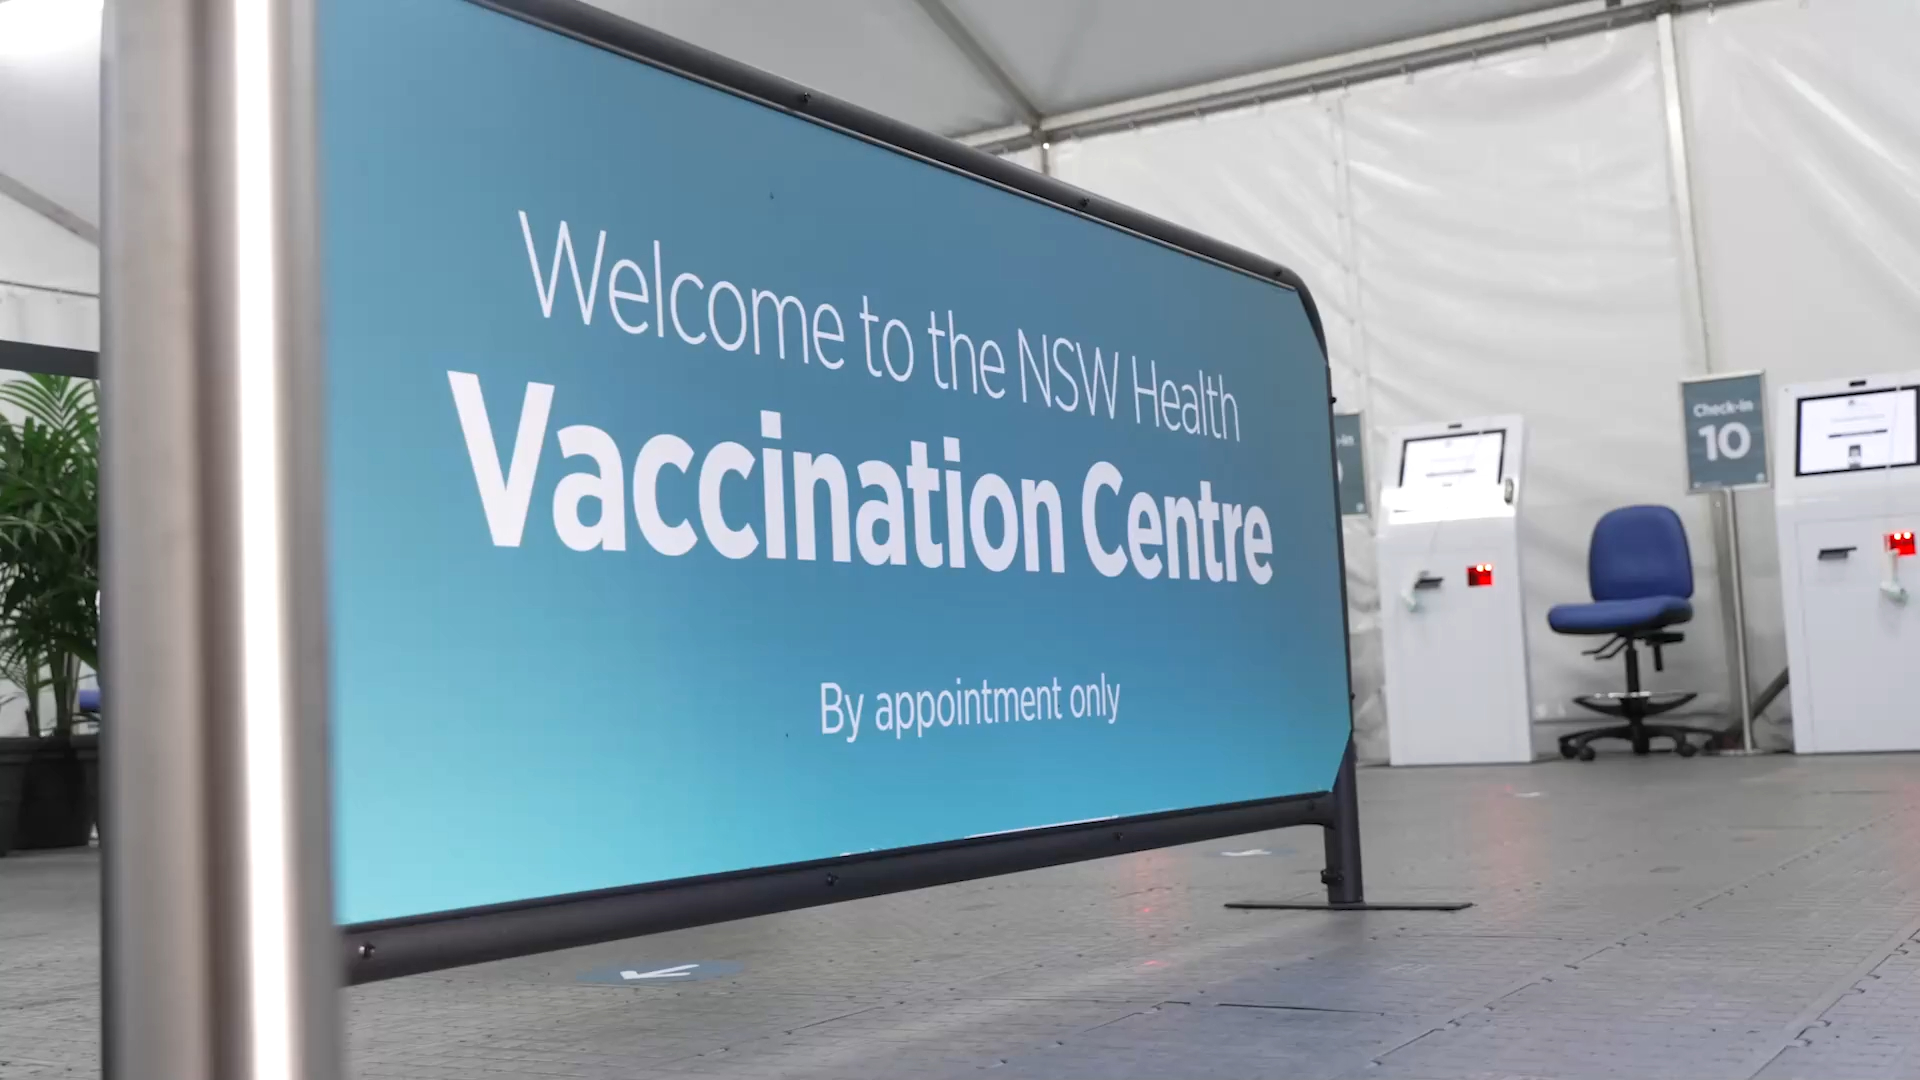 Long-awaited mass vaccination hub to open at Sydney Olympic Park tomorrow